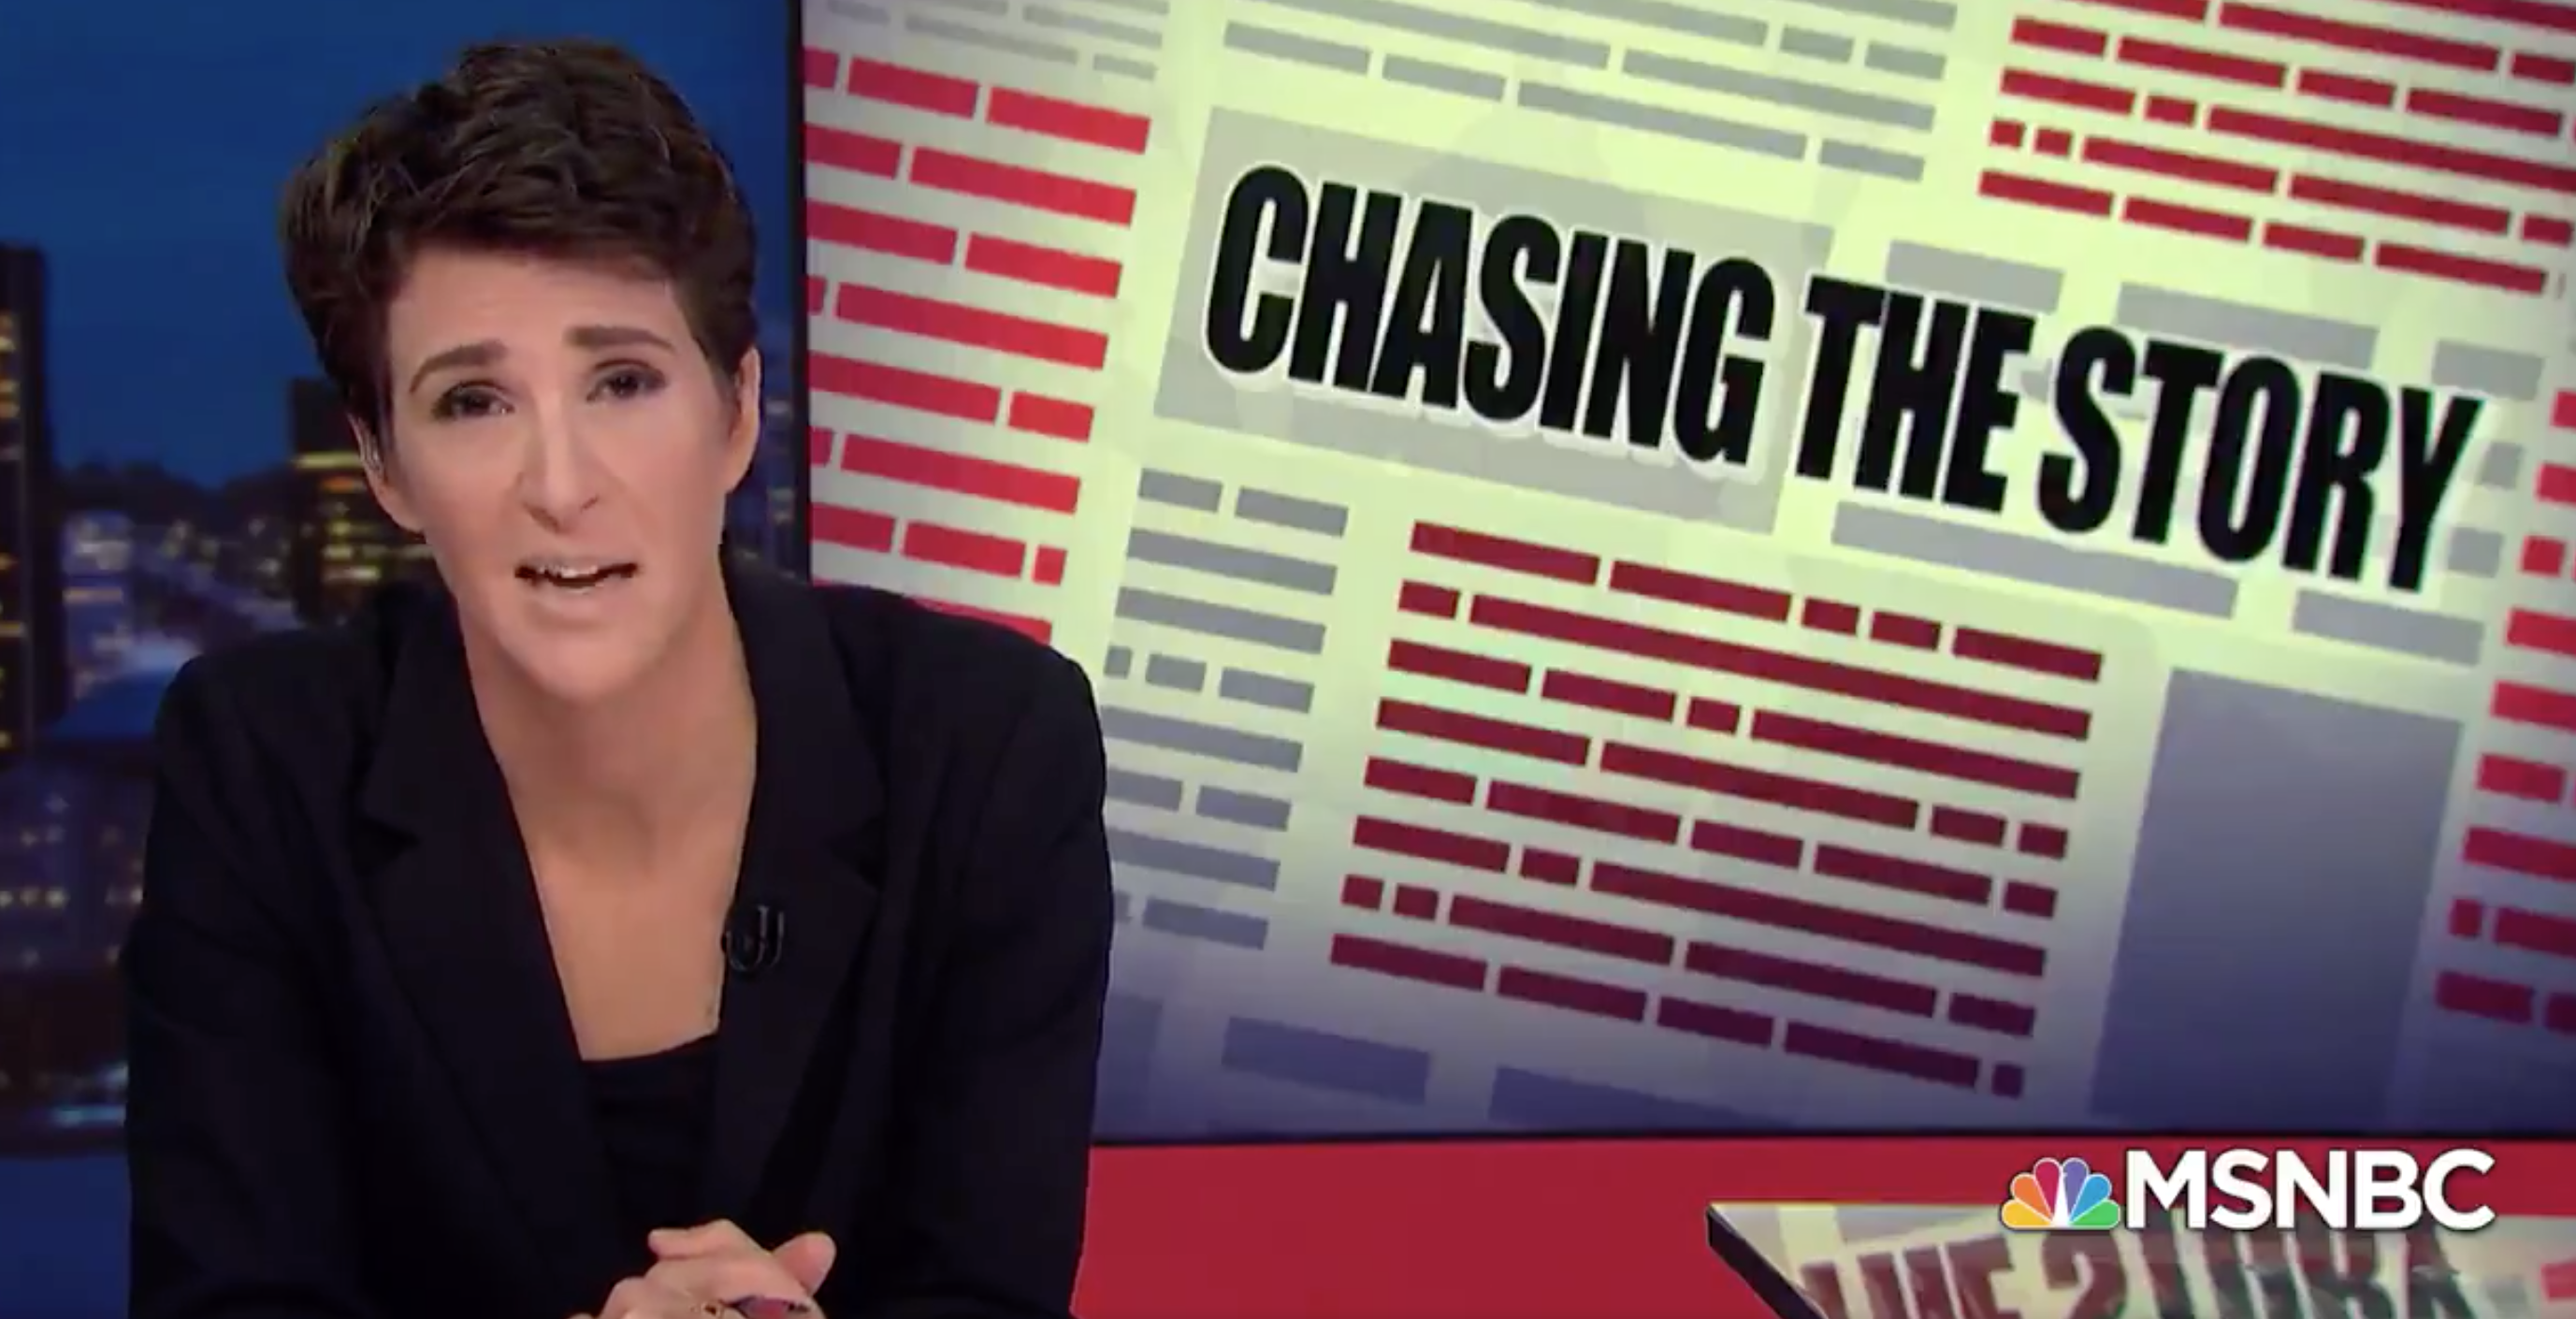 NBC killing Farrow's Weinstein story 'a shame' that caused 'consternation' within network: Rachel Maddow